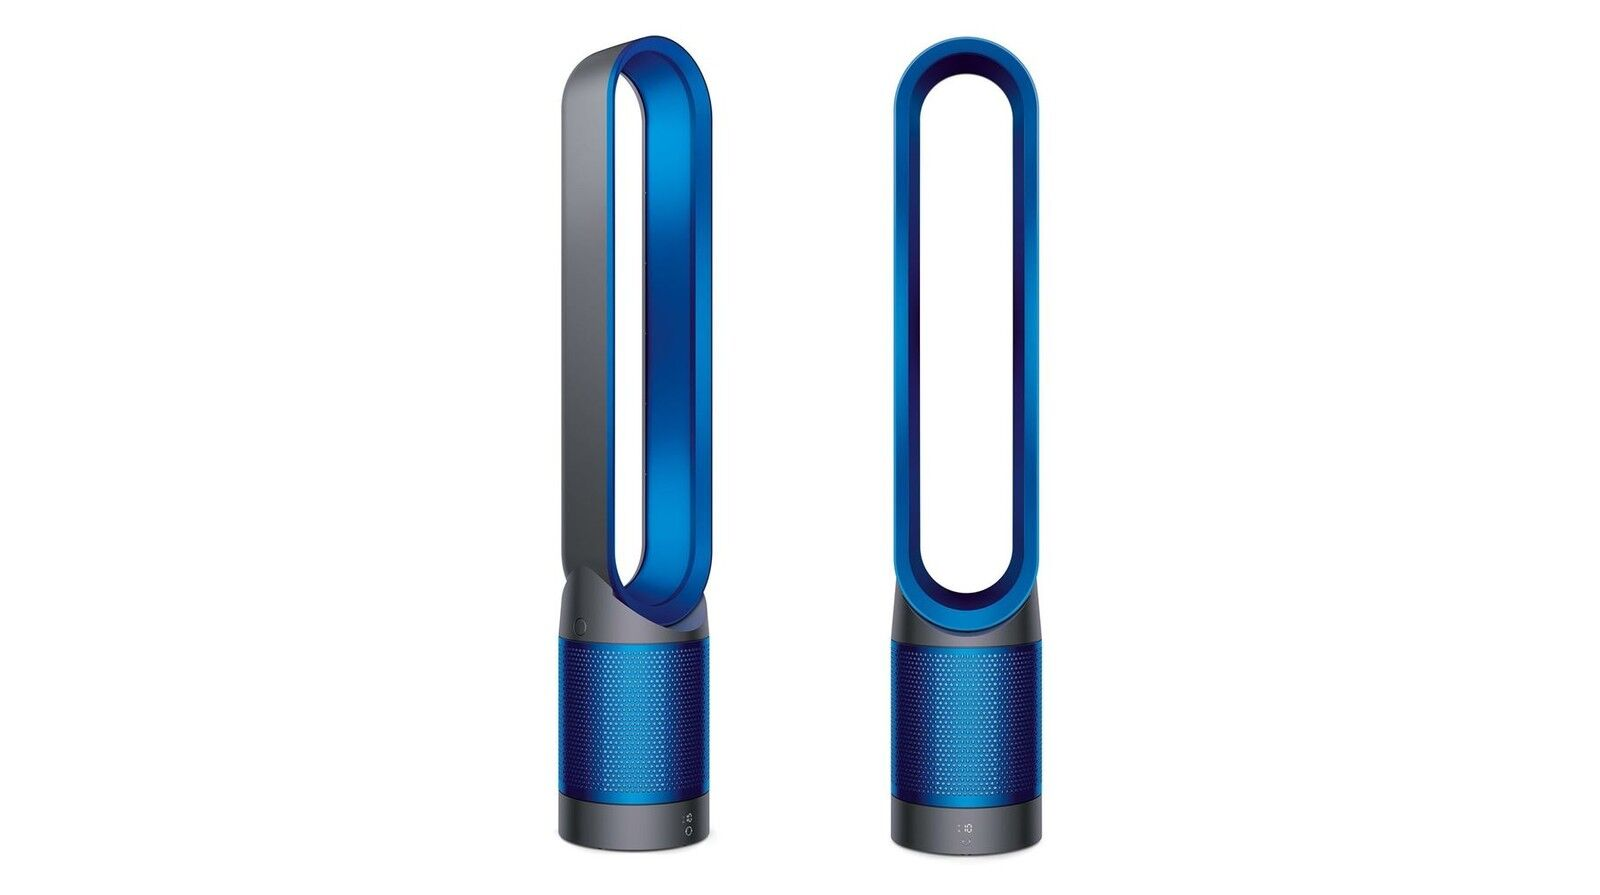 dyson pure cool link tower purifier fan blue brand new. Black Bedroom Furniture Sets. Home Design Ideas